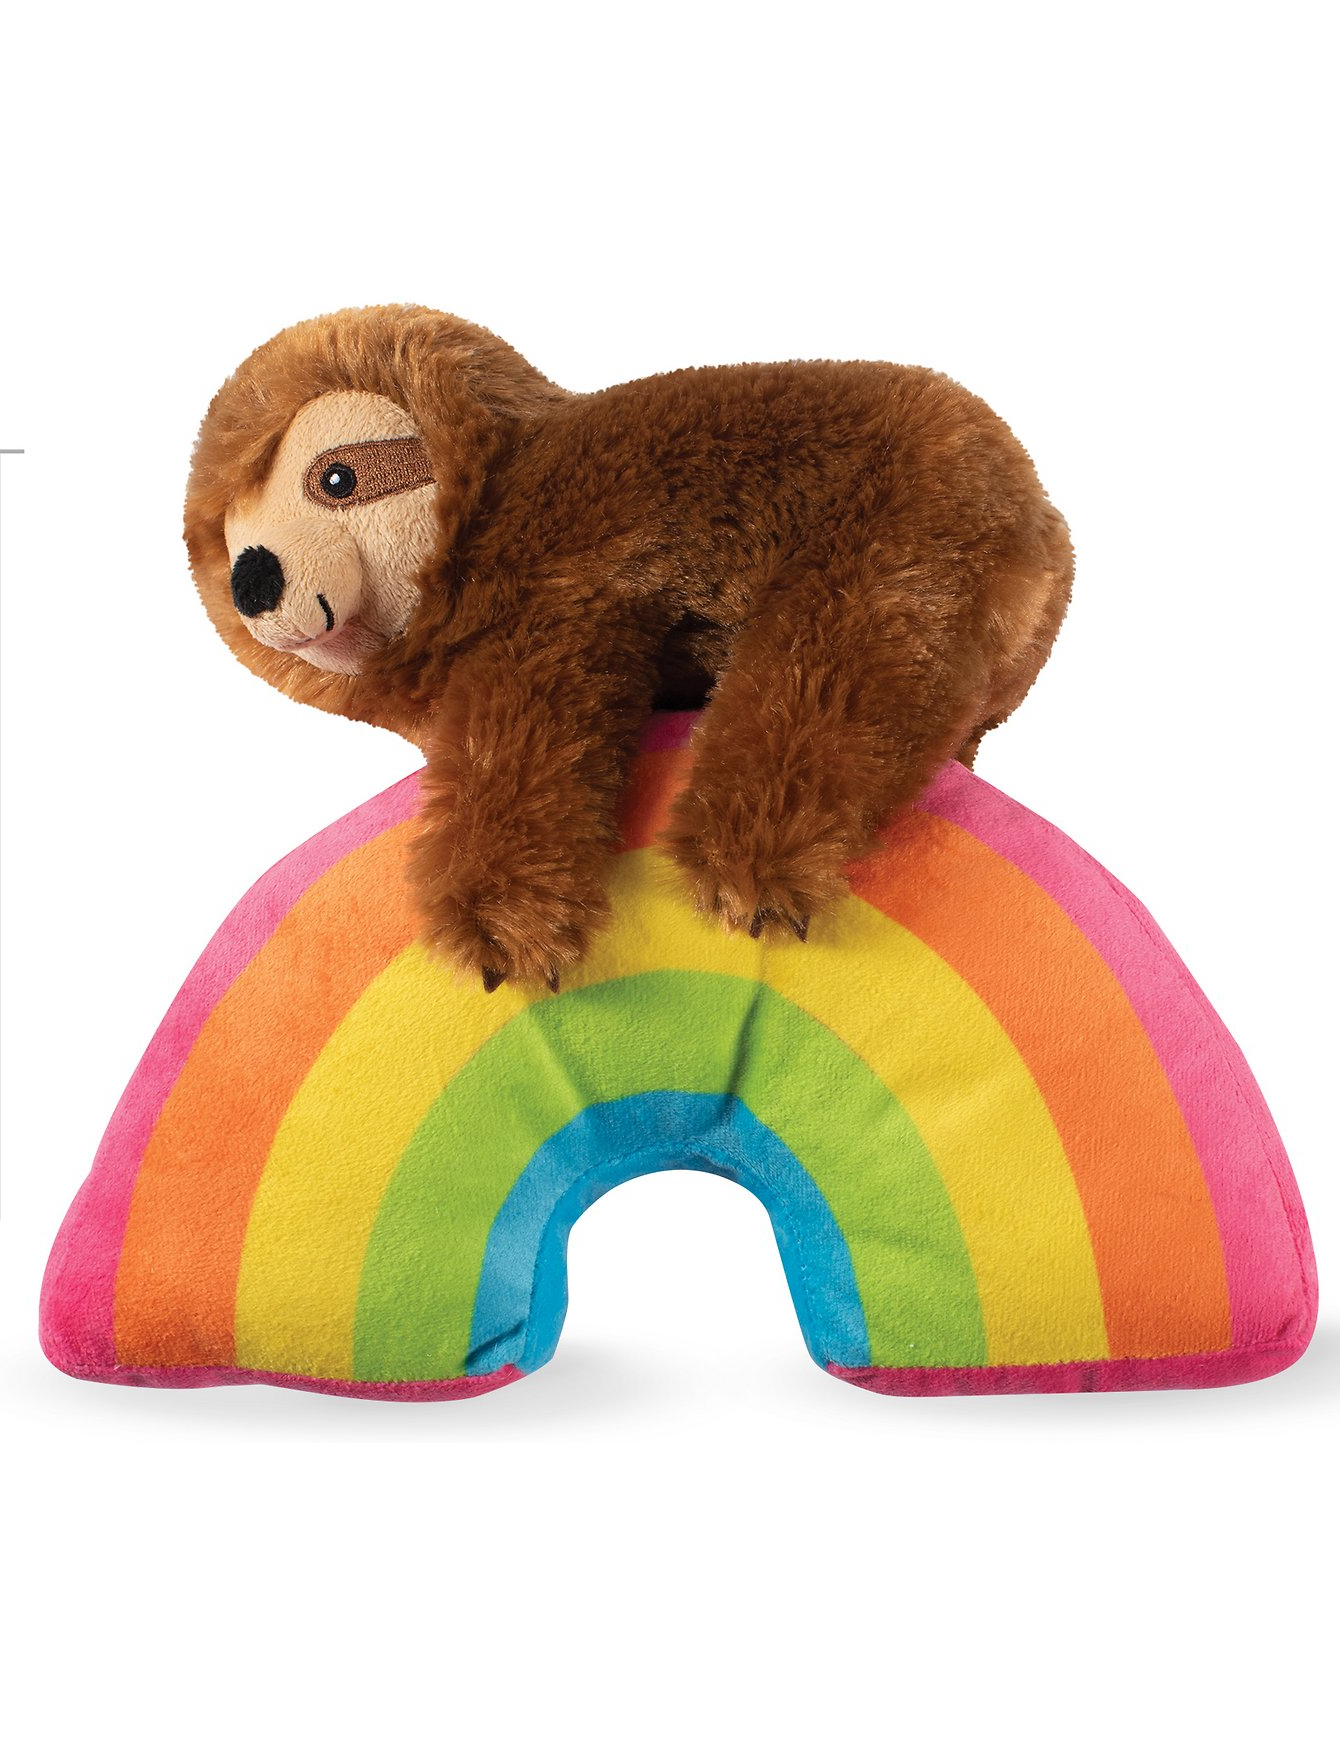 Fringe Studio Ziggy Sloth On A Rainbow Dog Squeaky Plush Toy | Perromart Online Pet Store Singapore